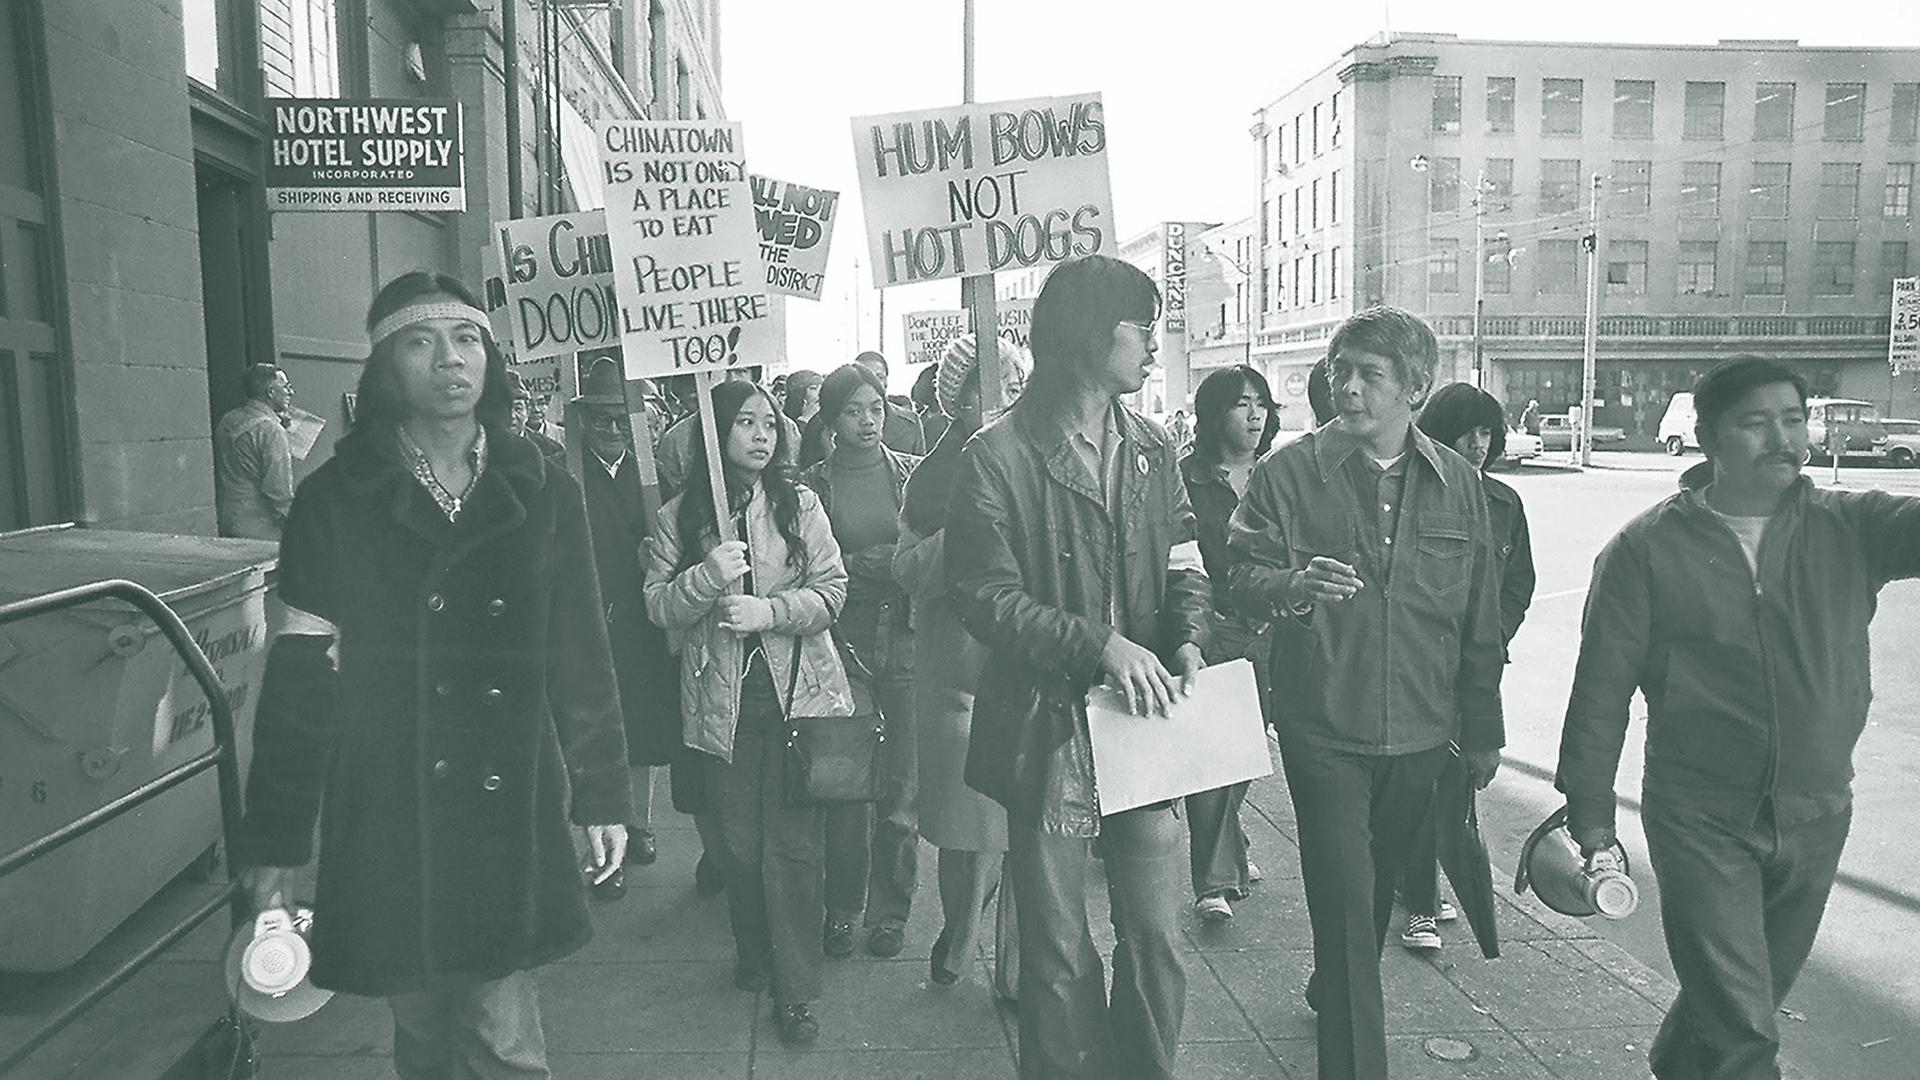 Crowd of Asian American Pacific Islanders marching with signs down a sidewalk in 1972. Signs say: Humbows not Hot Dogs, Chinatown is not only a place to eat. People live there too.